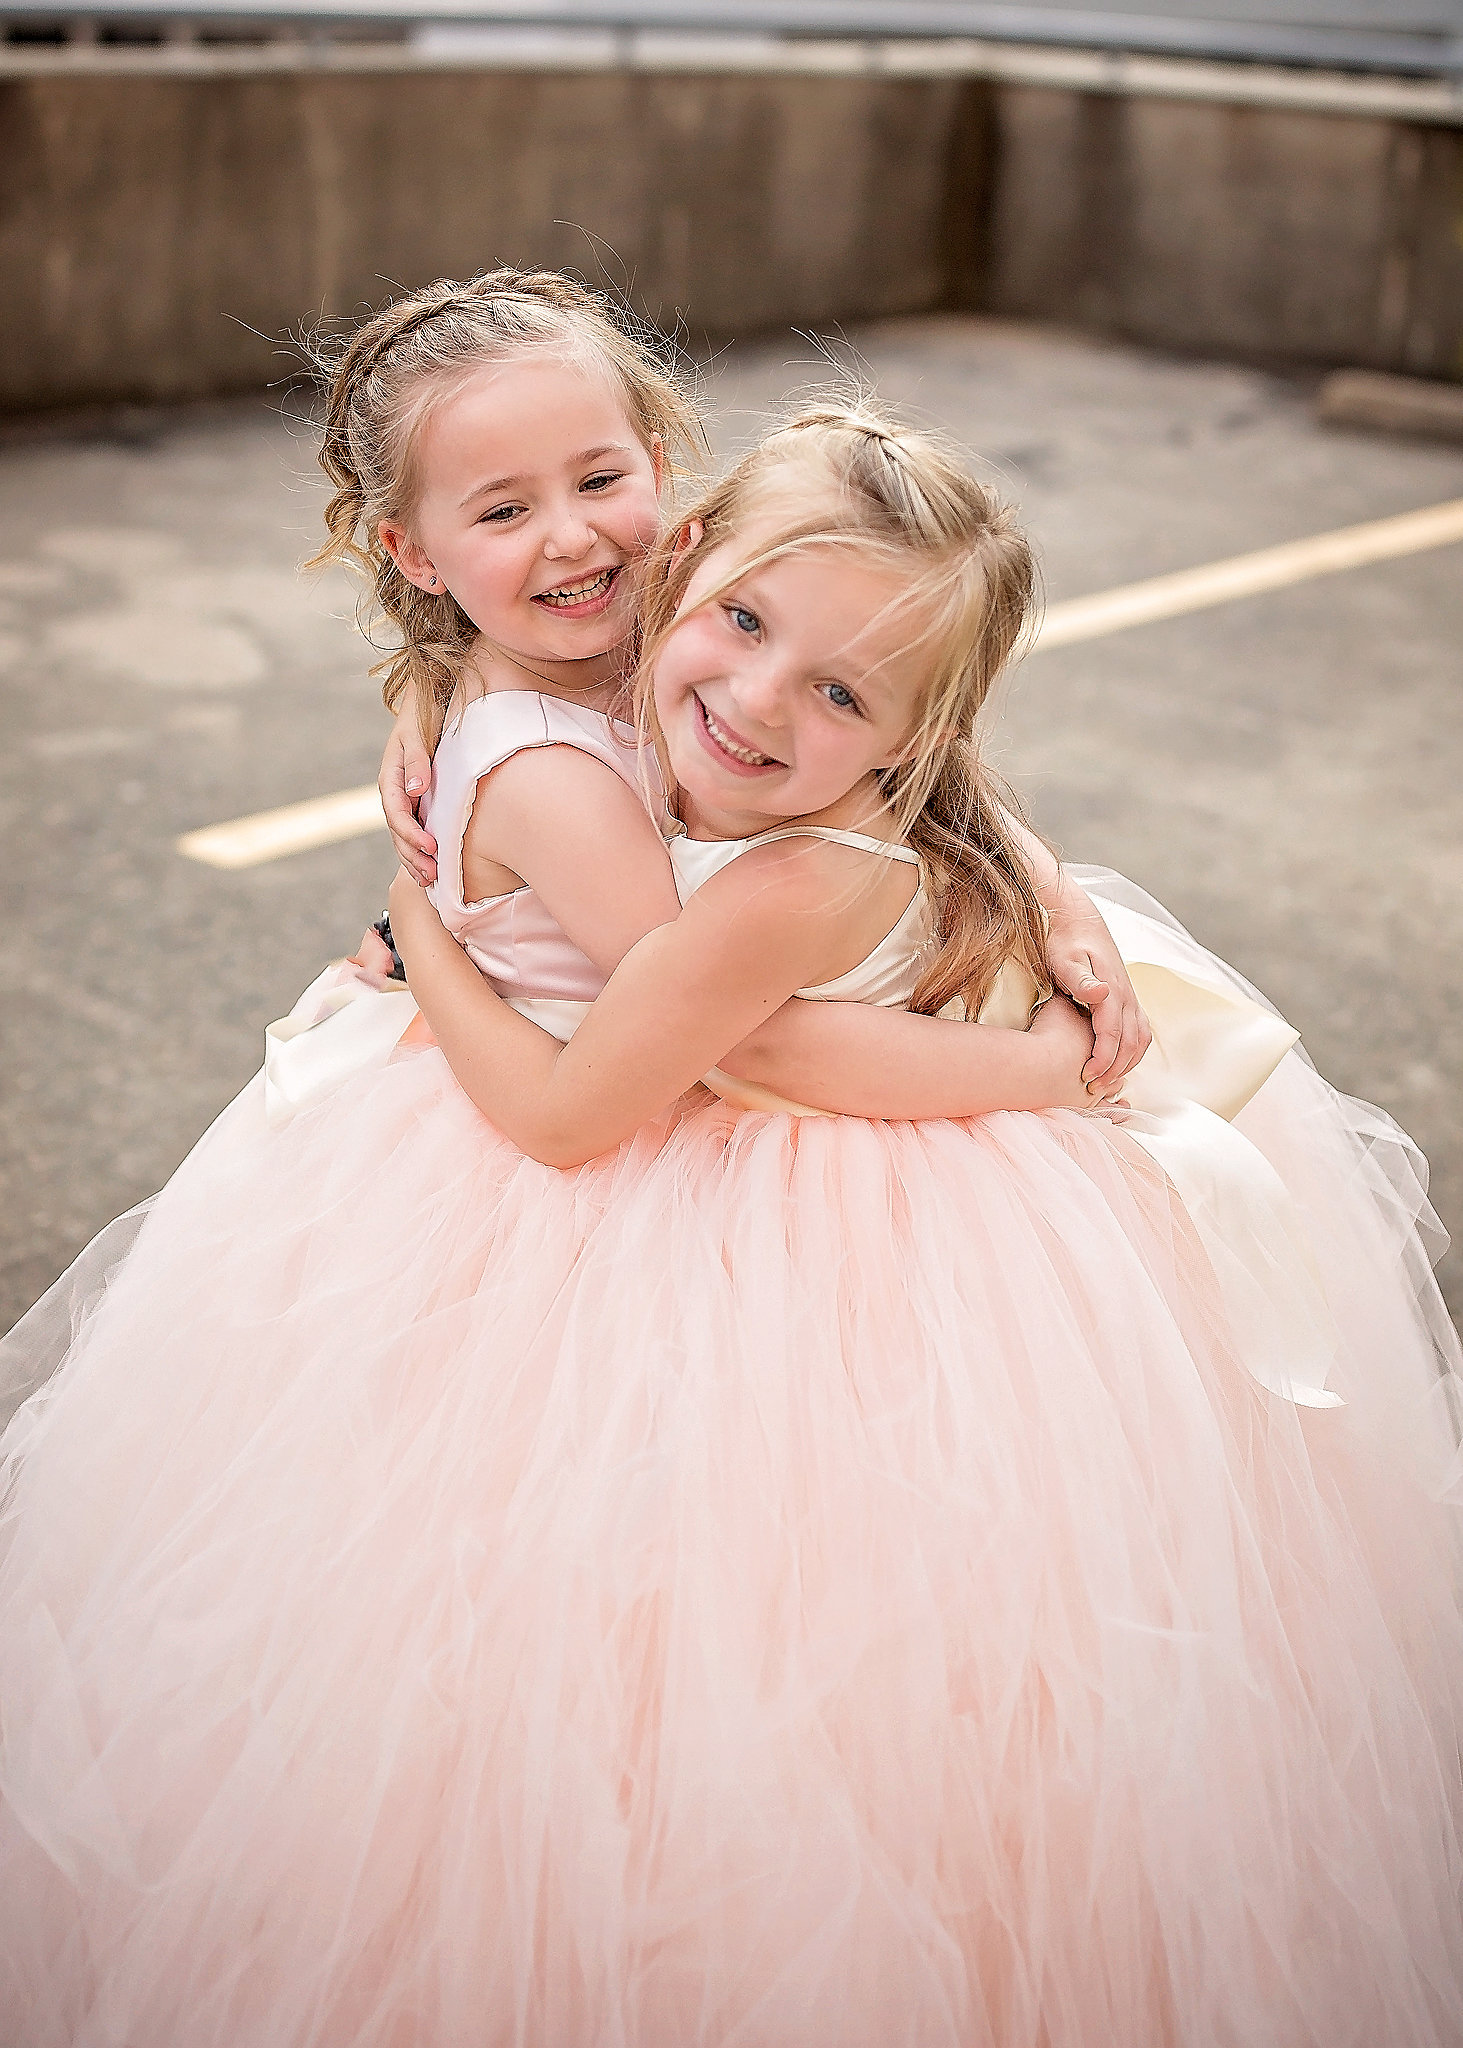 Ivory Satin Bodice and Blush Tulle - Flower Girl Tutu Dress,.jpg